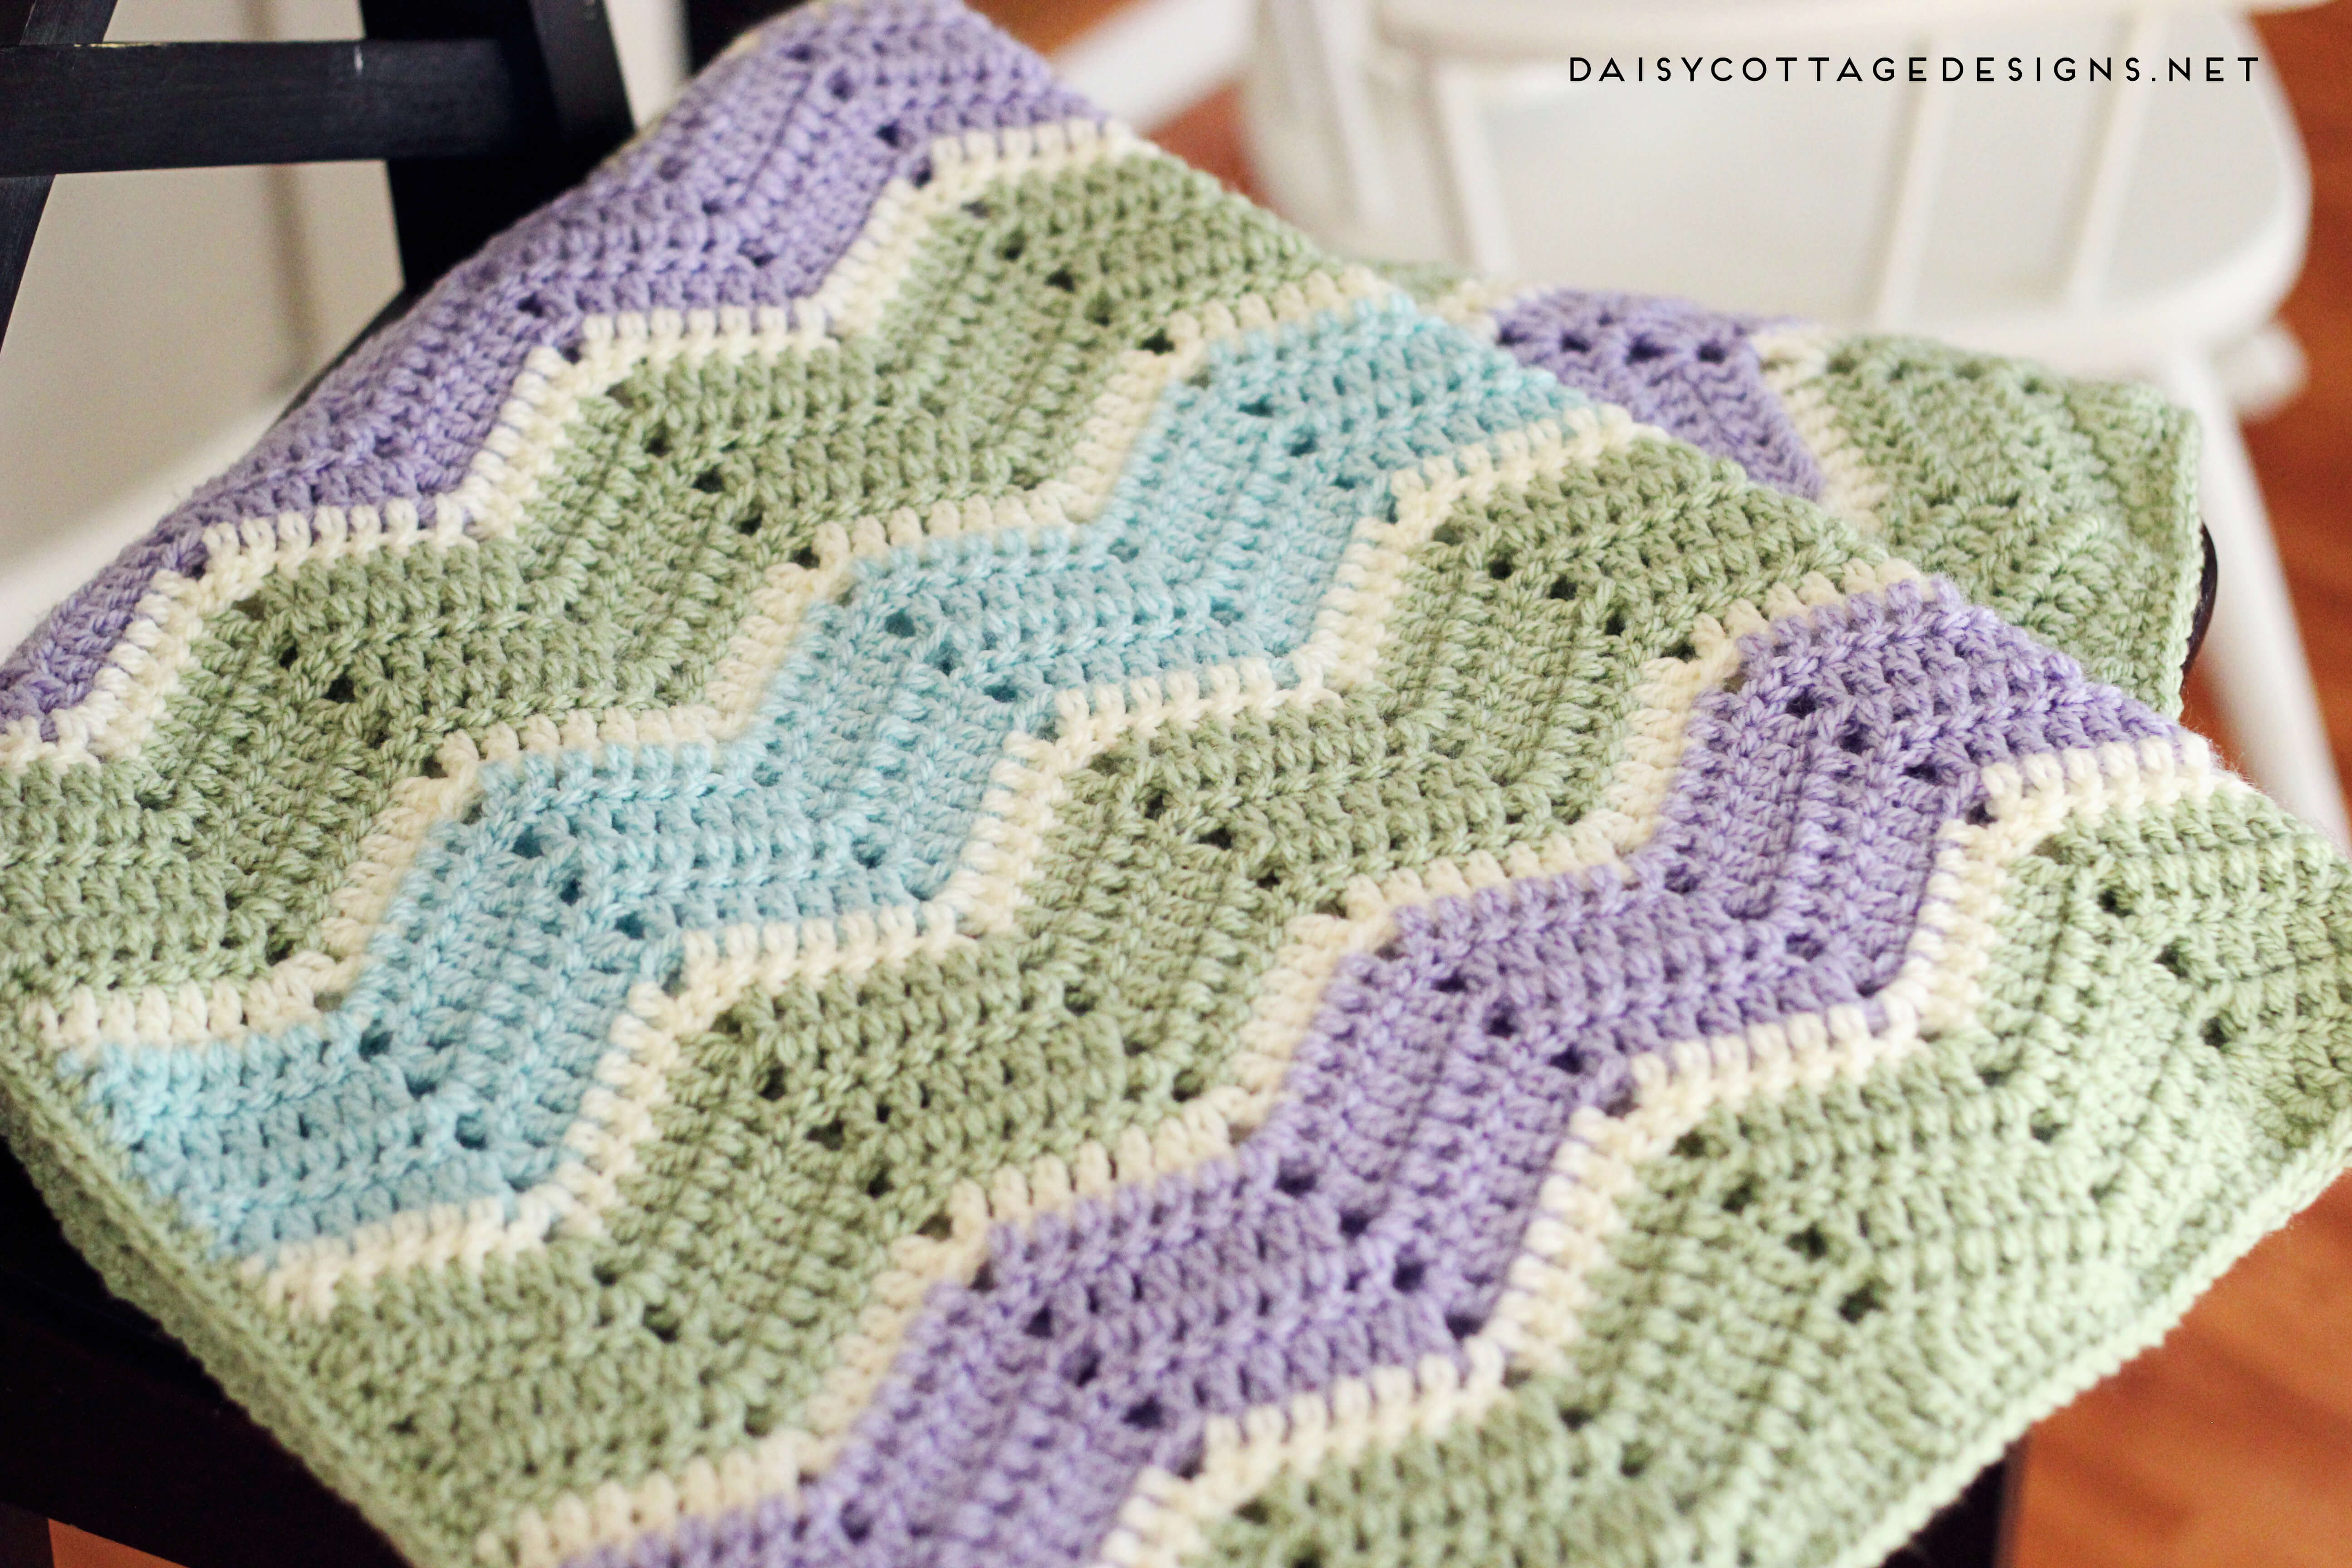 Afghan Blanket Pattern Inspirational Ripple Blanket Crochet Pattern Daisy Cottage Designs Of Attractive 40 Pics Afghan Blanket Pattern